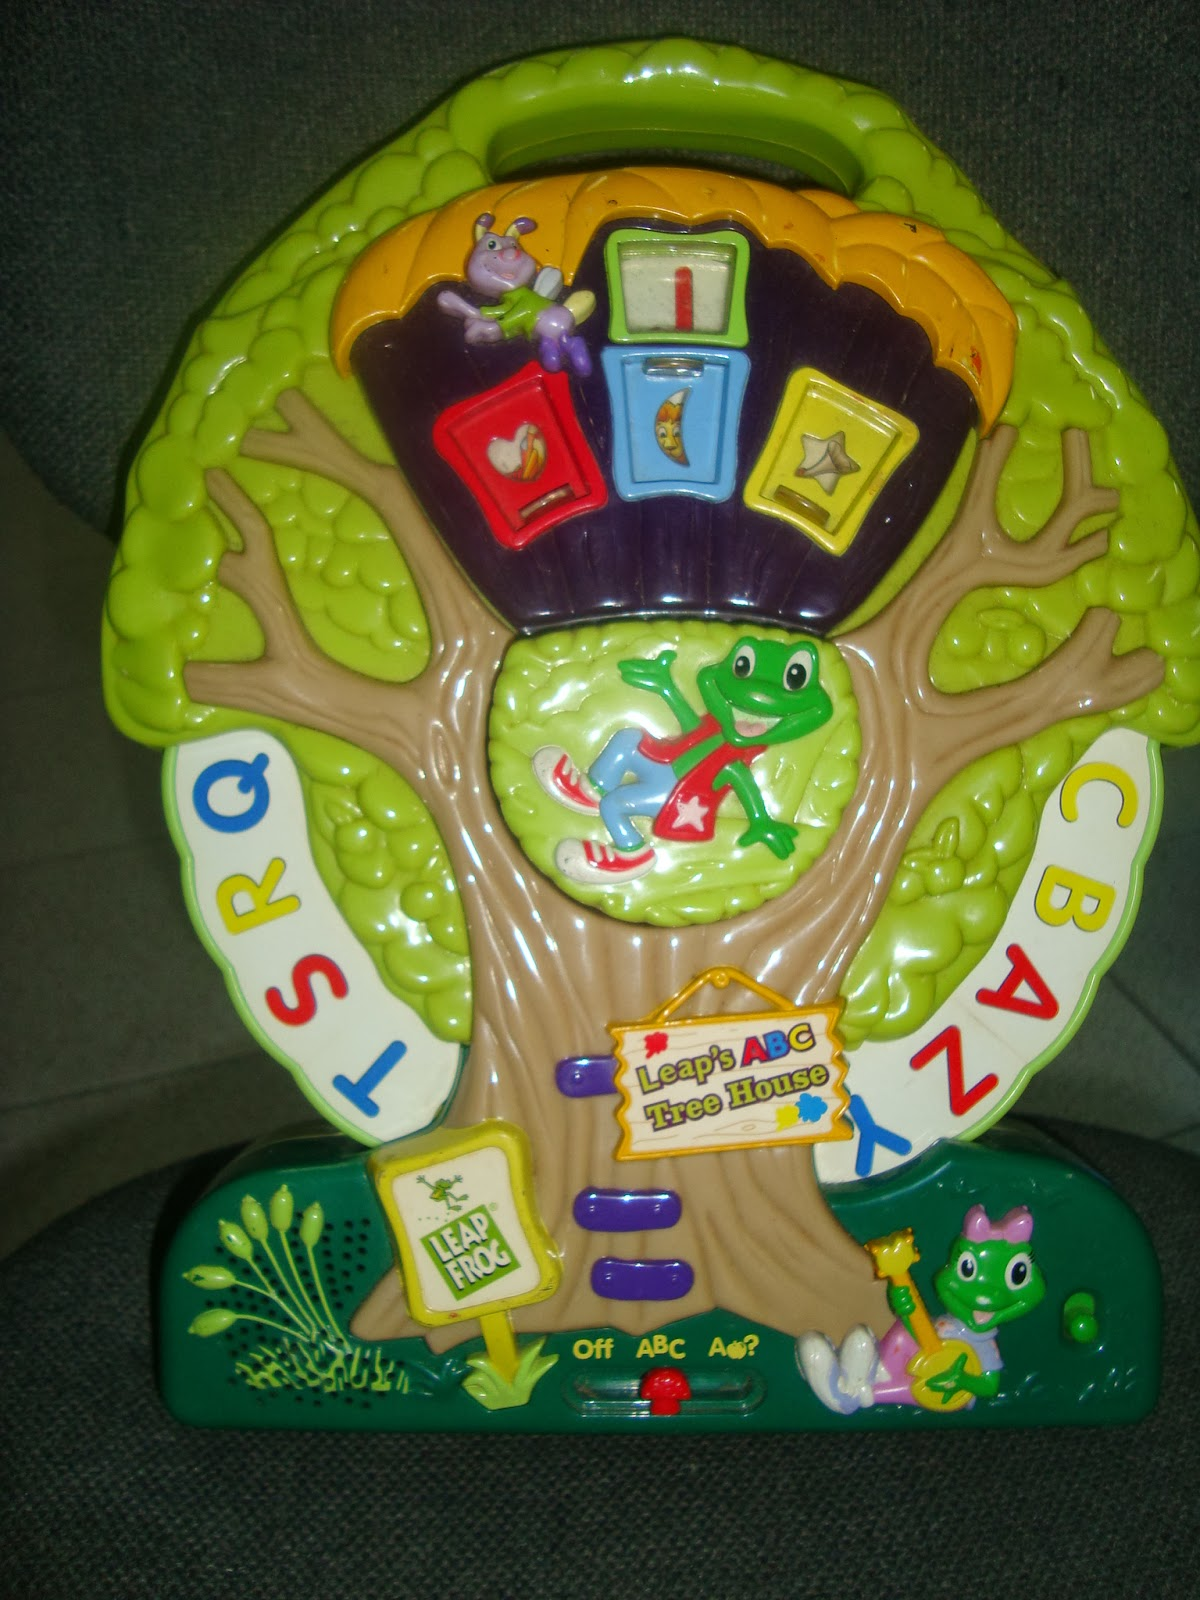 mommyslove4baby143  leapfrog abc tree house like new 649p sold